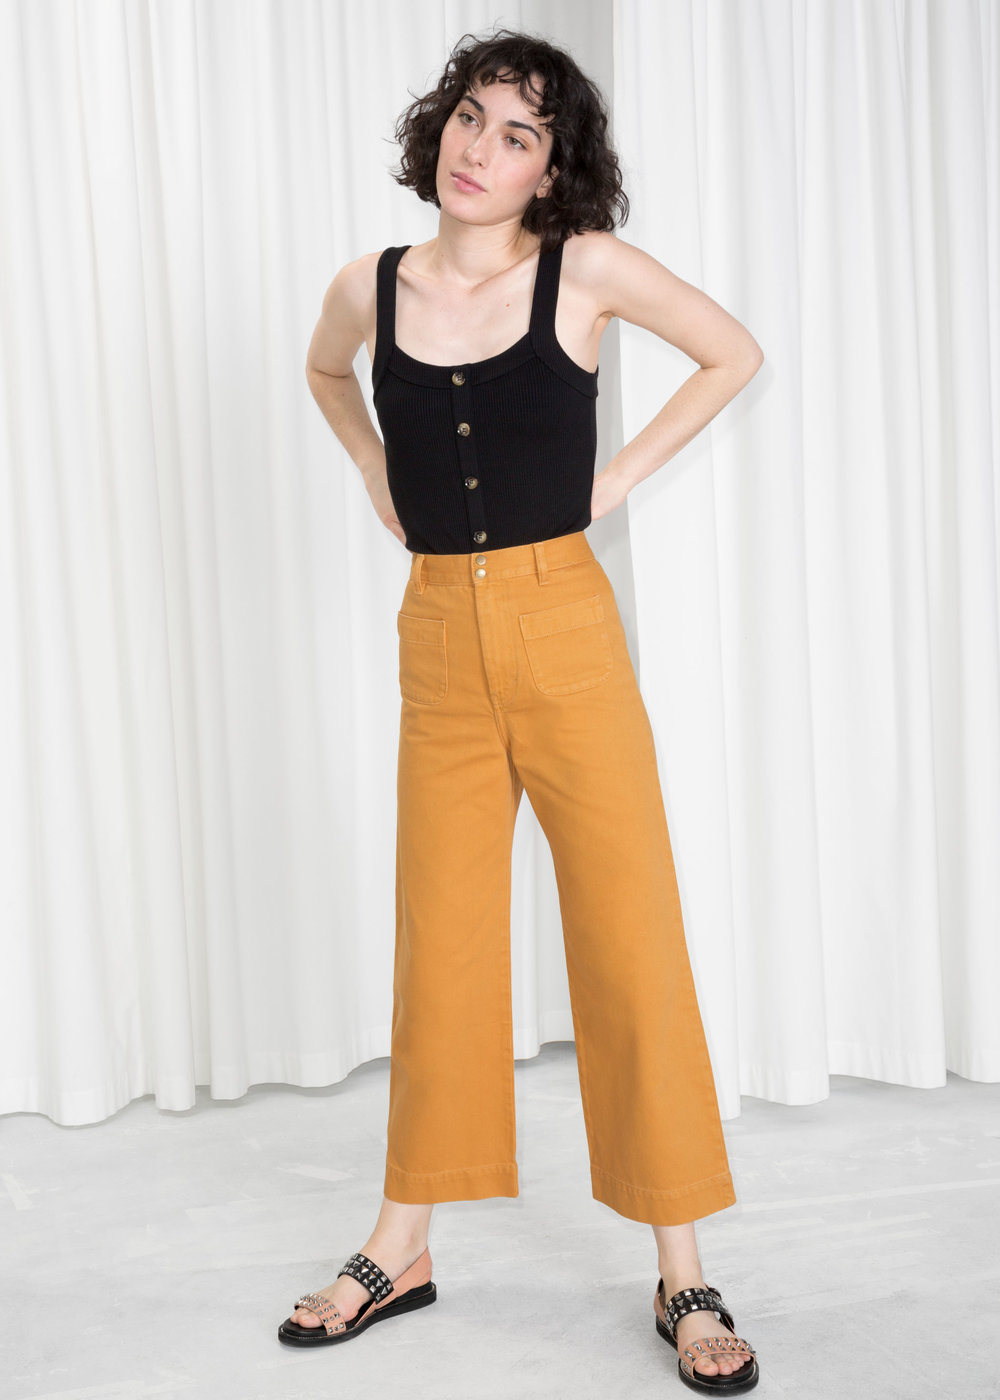 Twill Mustard Pants - The Find | Courtesy of & Other Stories